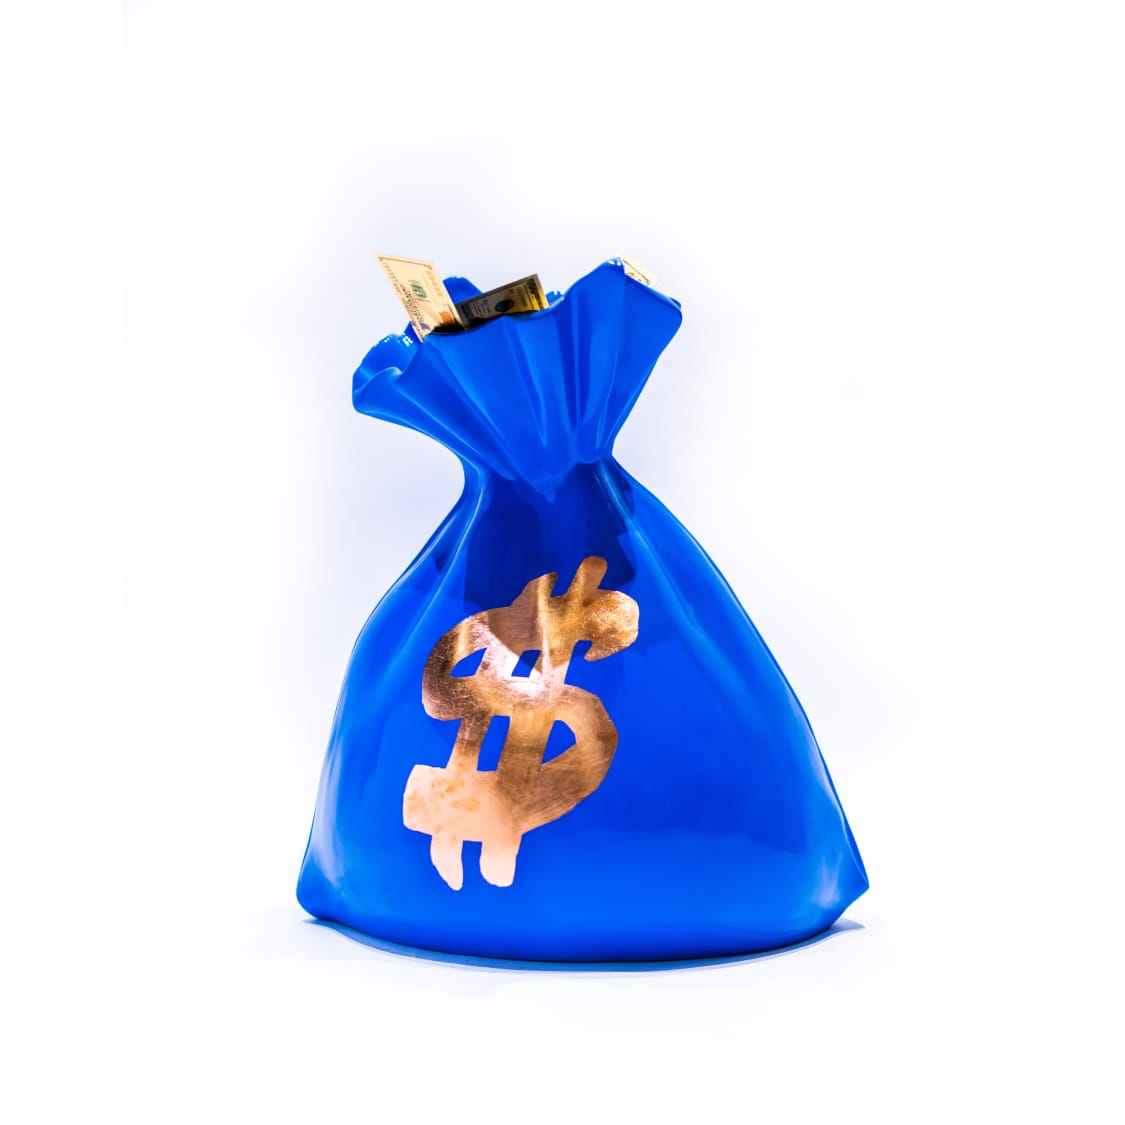 Money Bag Sculpture  Pop Art